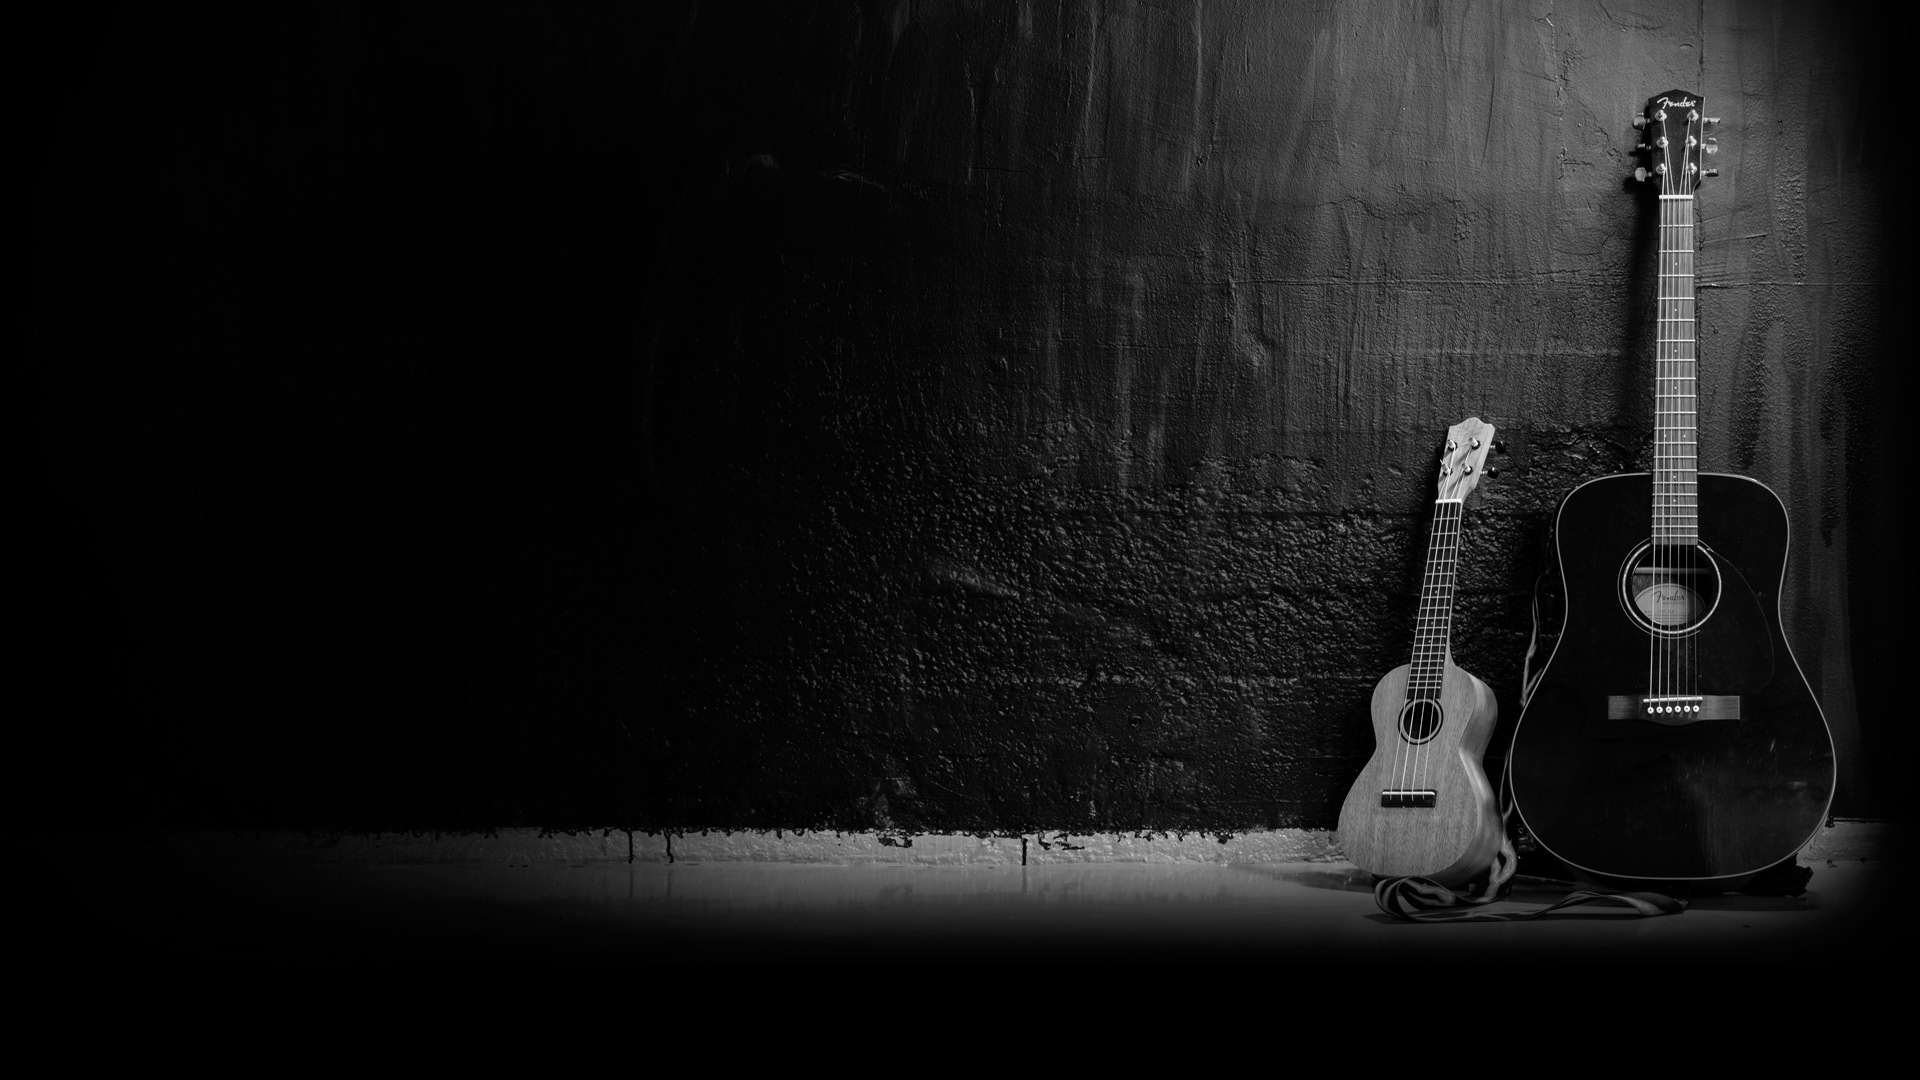 Guitar Background Image Posted By John Johnson